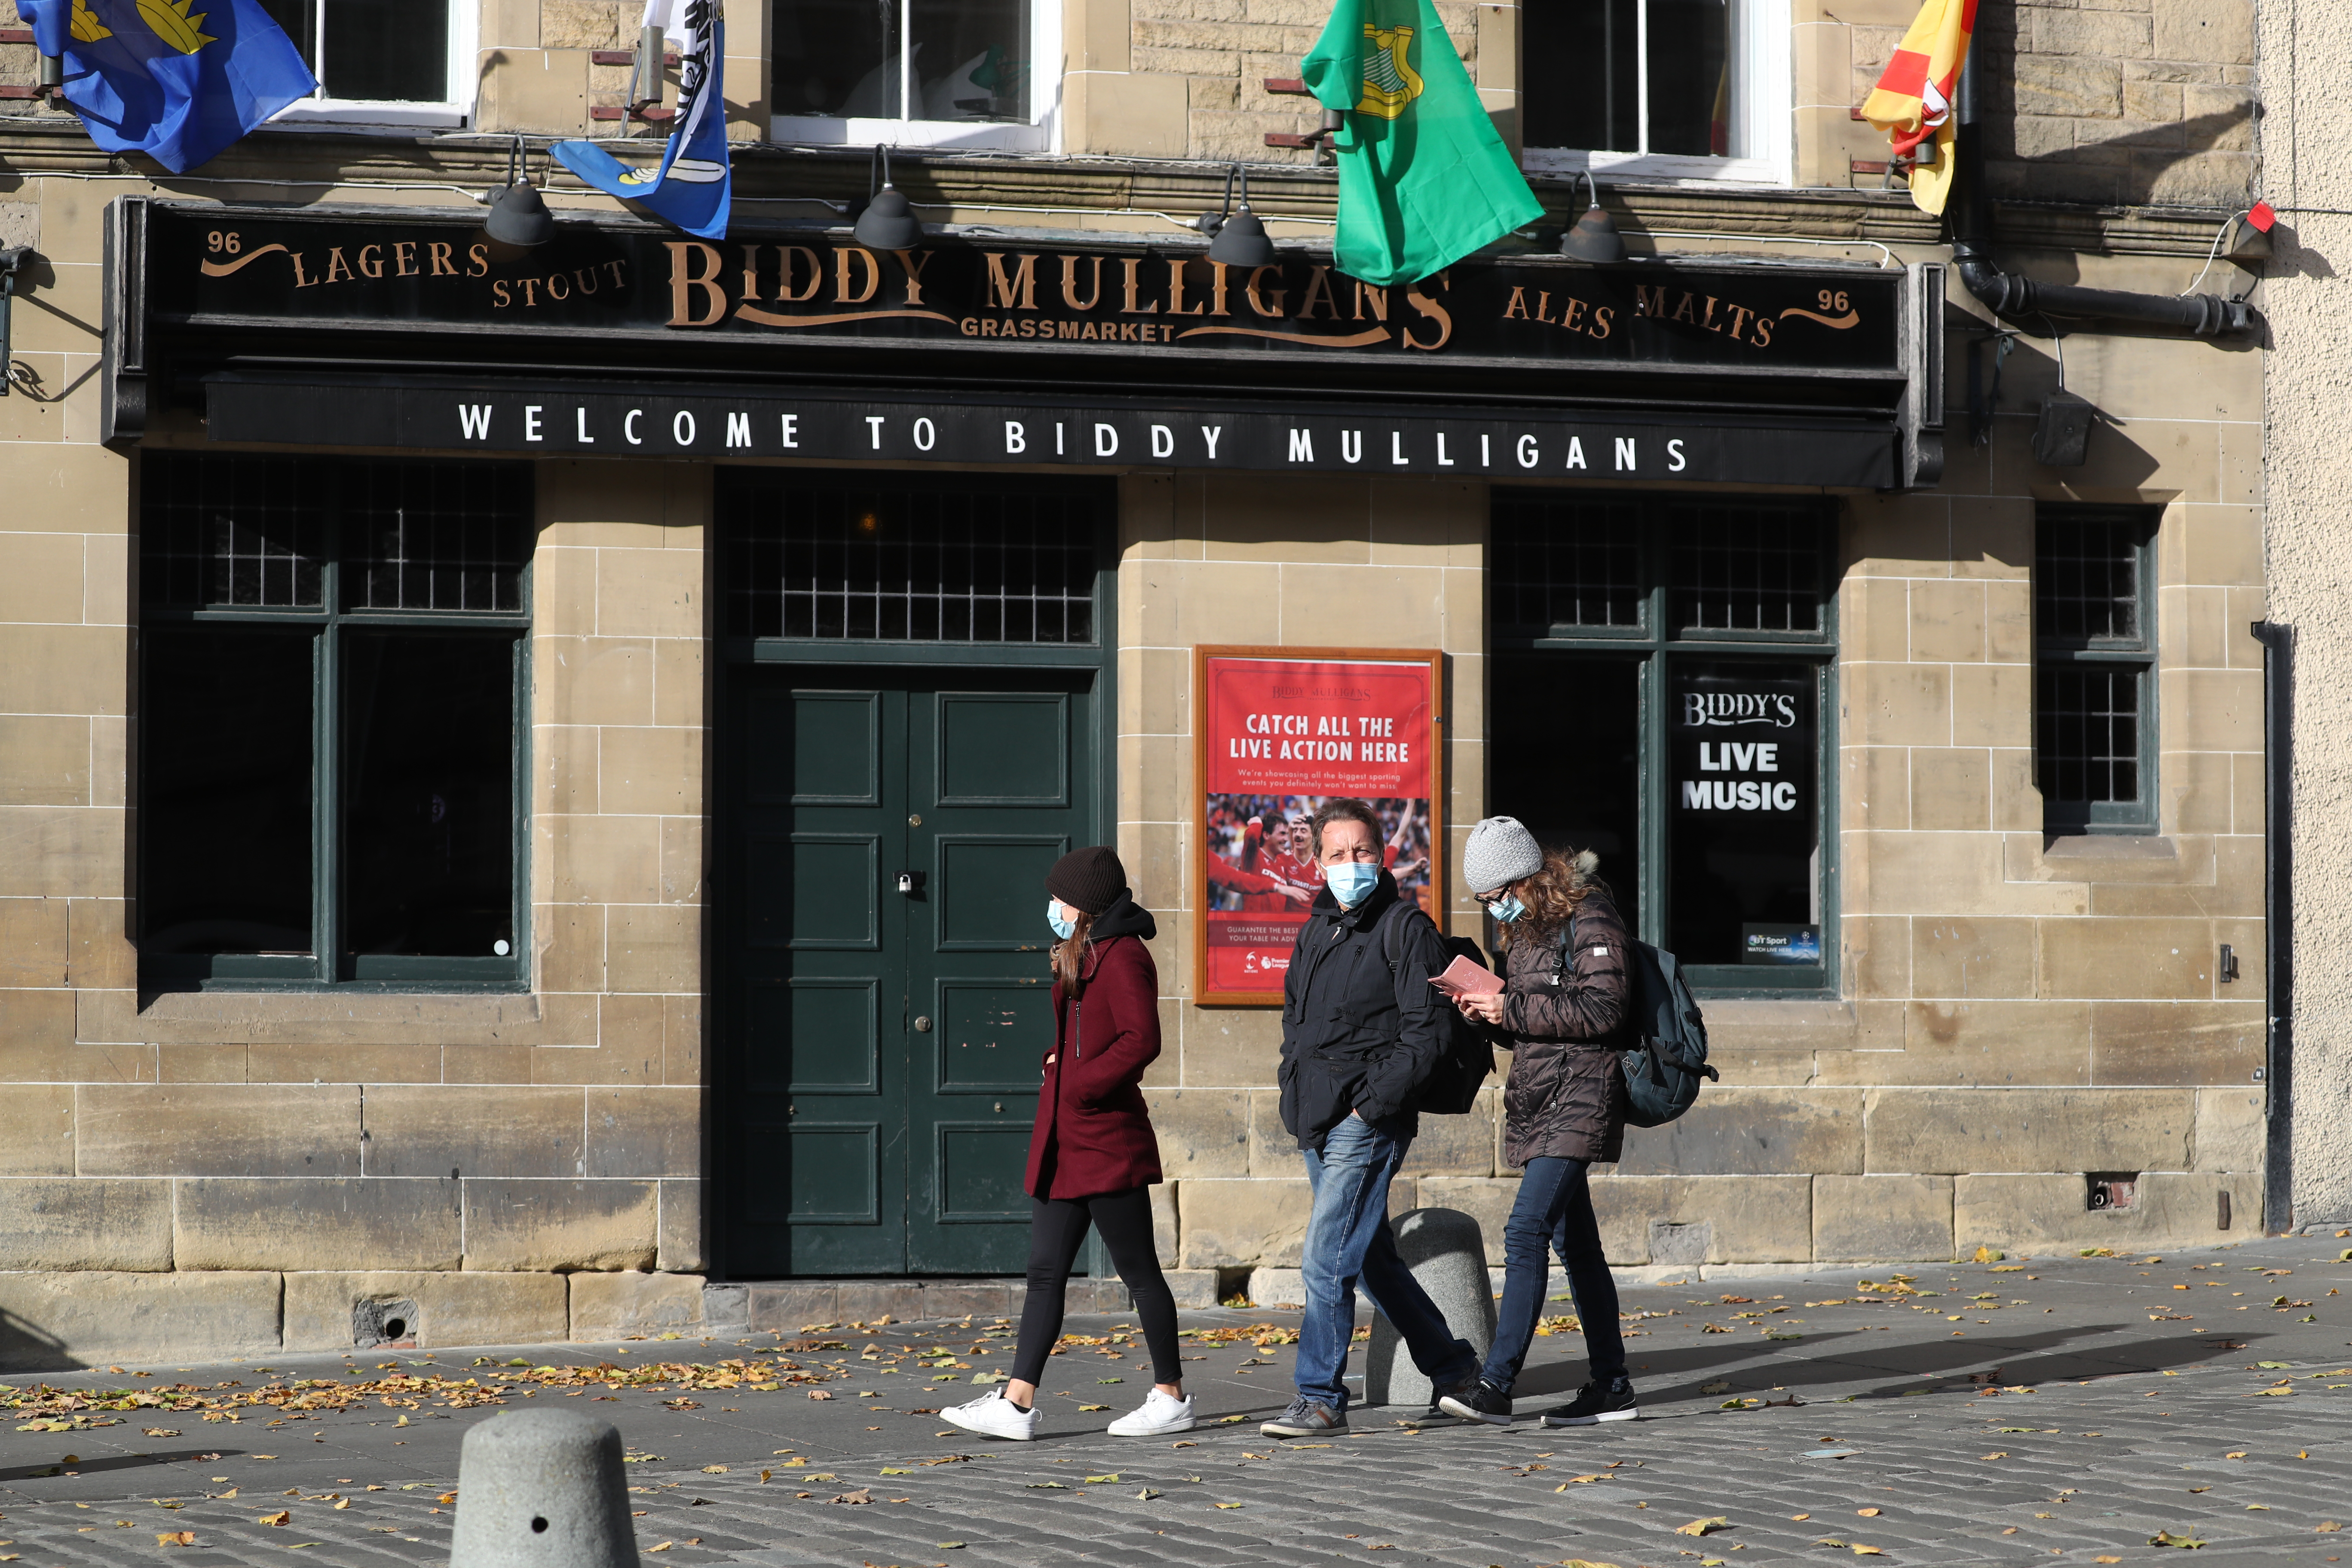 Pubs and restaurants across Scotland are closed because of coronavirus restrictions